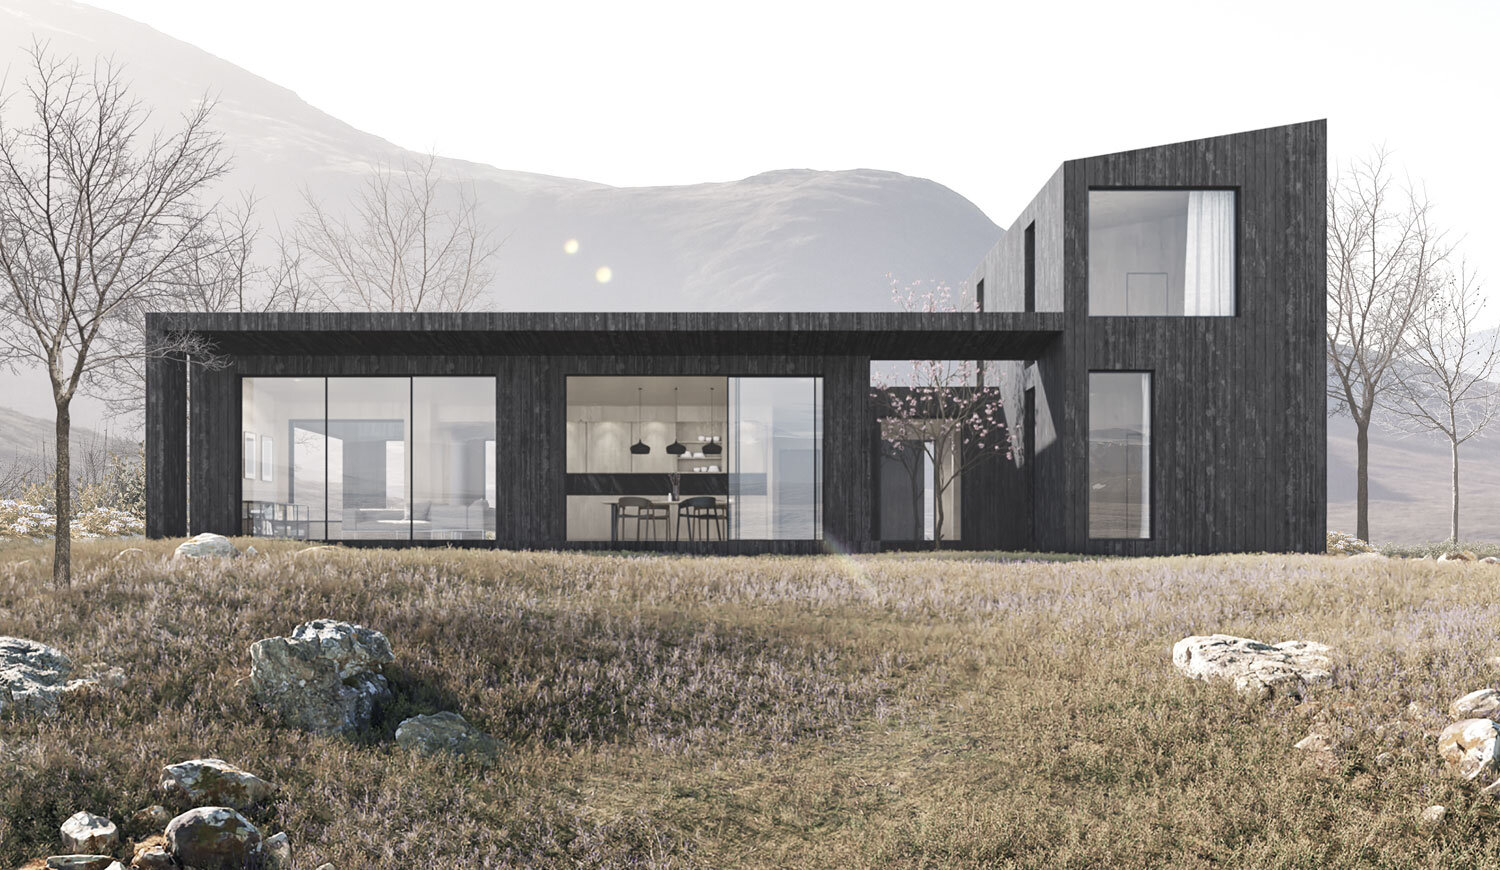 Koto Design Architect Designed Prefab Homes And Cabins In The Uk And Usa Koto Release Their Modern Modular Homes In The Usa